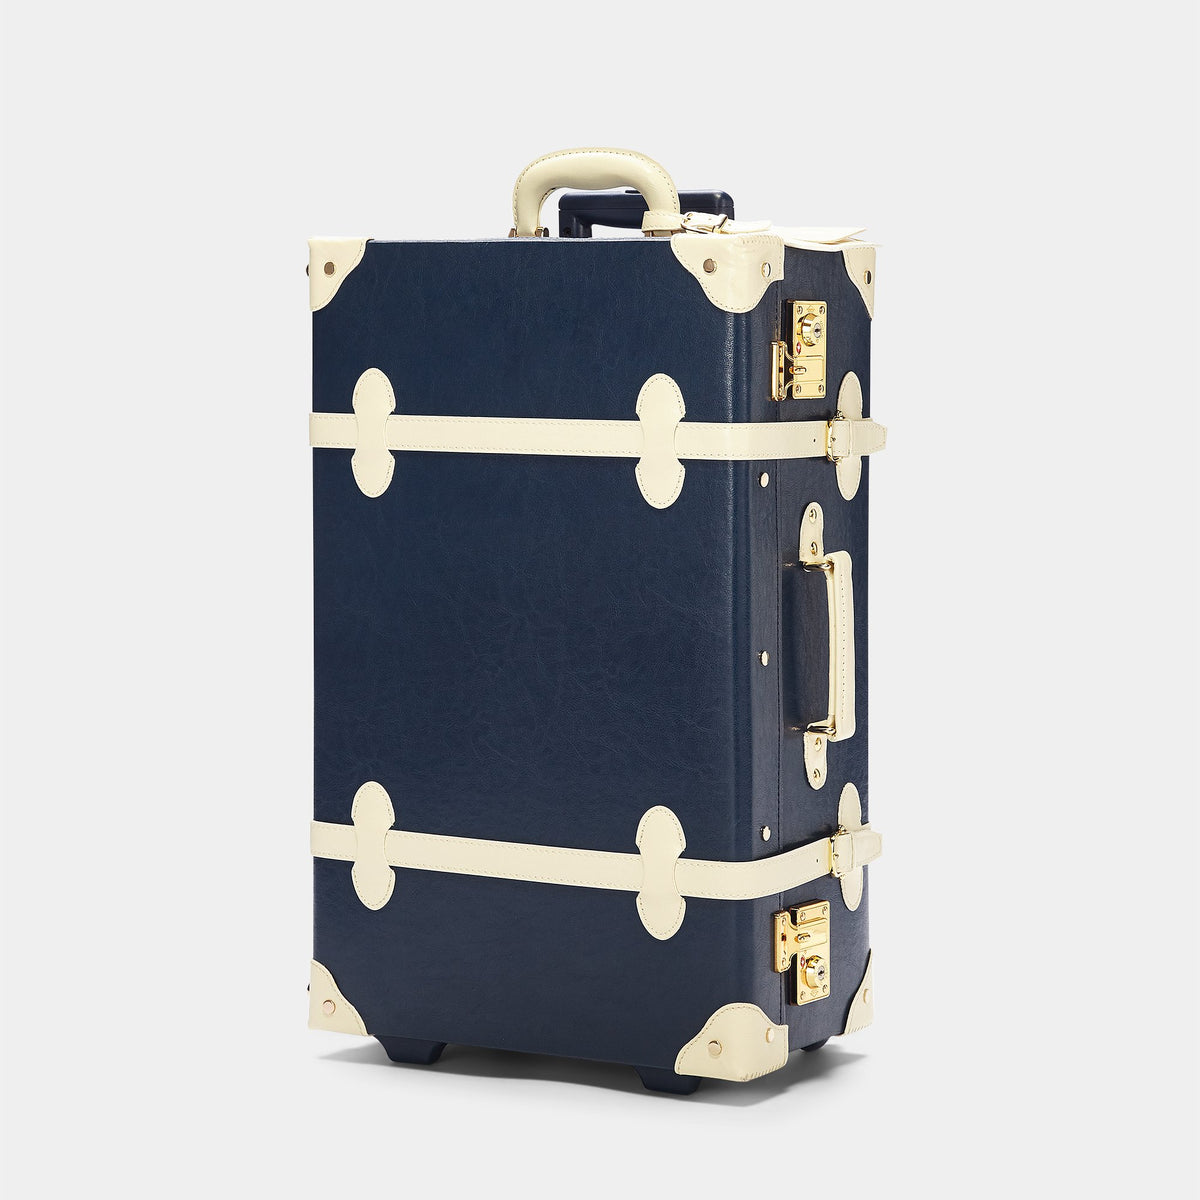 The Entrepreneur Stowaway in Navy - Vintage-Inspired Luggage - Exterior Front